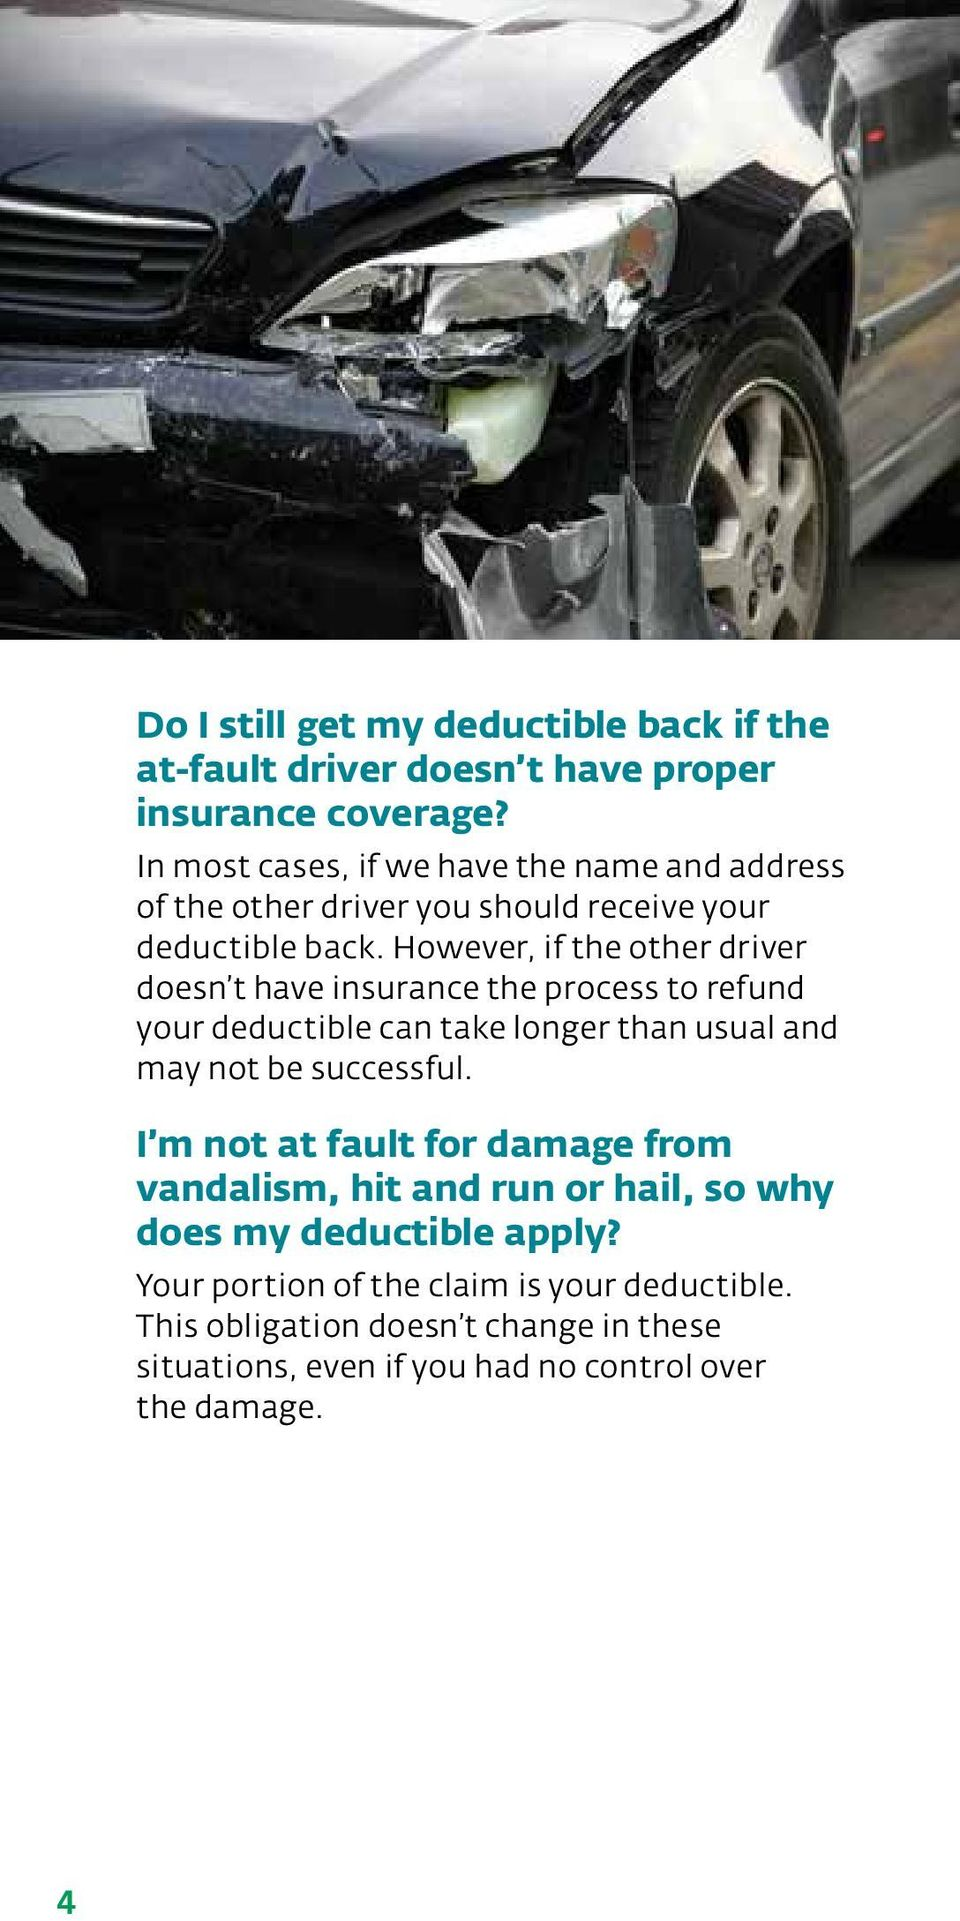 However, if the other driver doesn t have insurance the process to refund your deductible can take longer than usual and may not be successful.